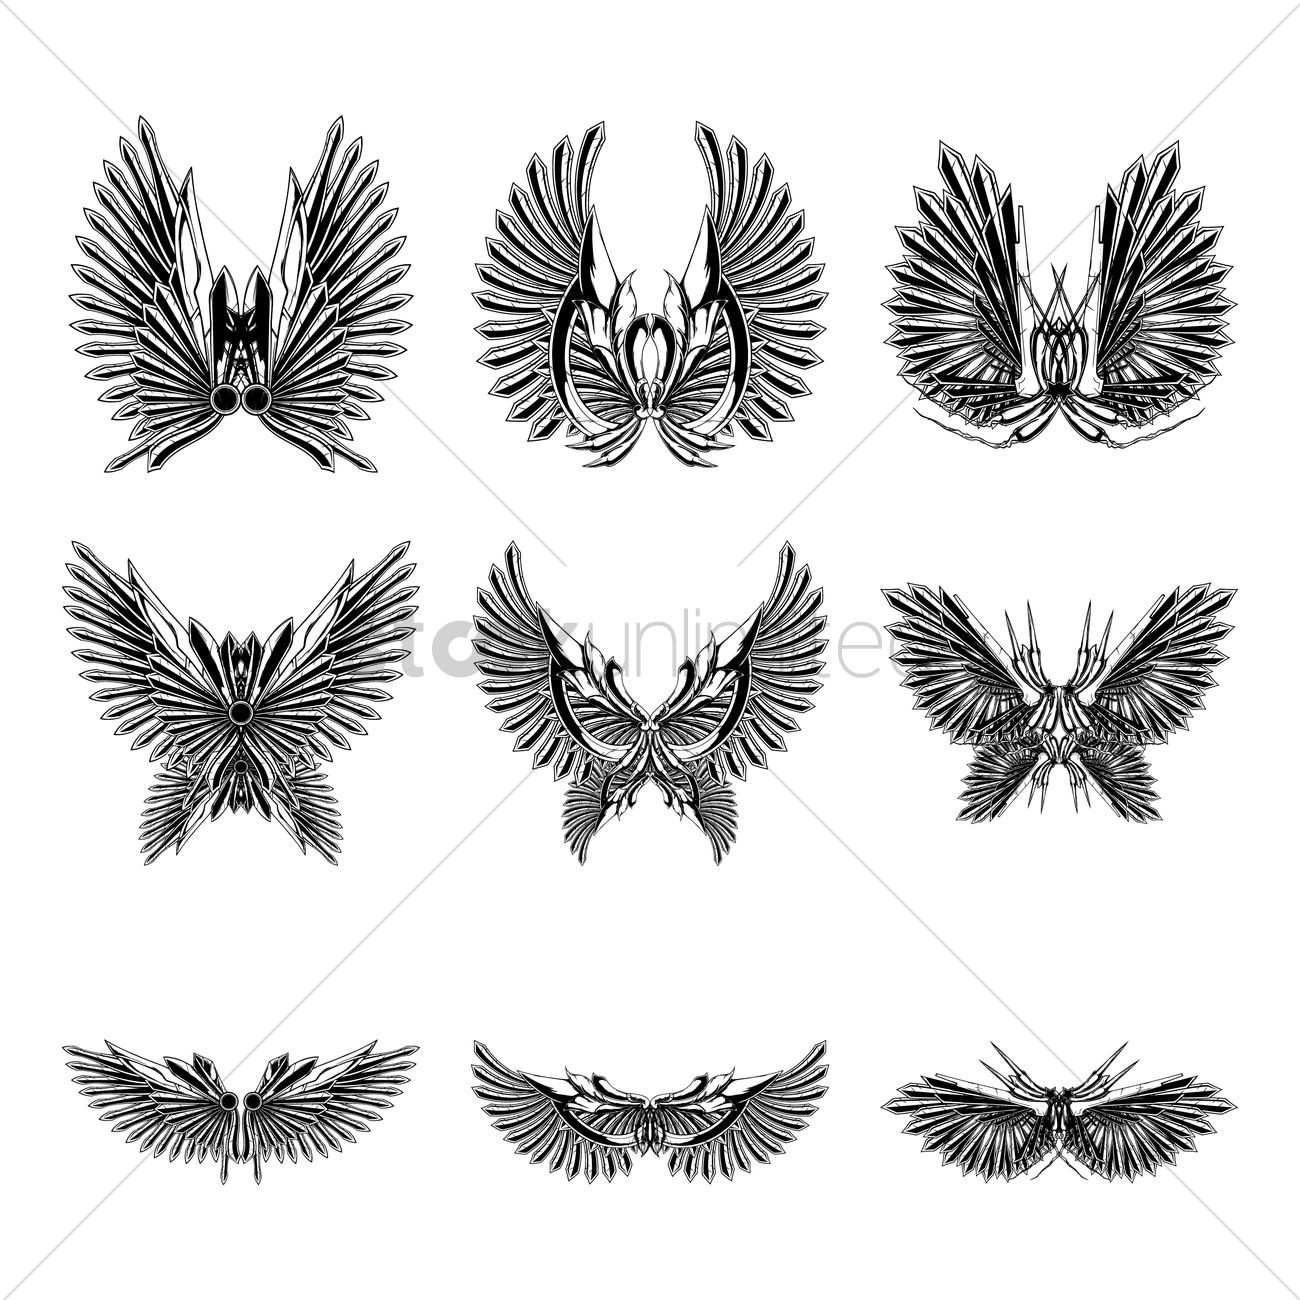 3889ac8f Collection of wing designs Vector Image - 1875077 | StockUnlimited